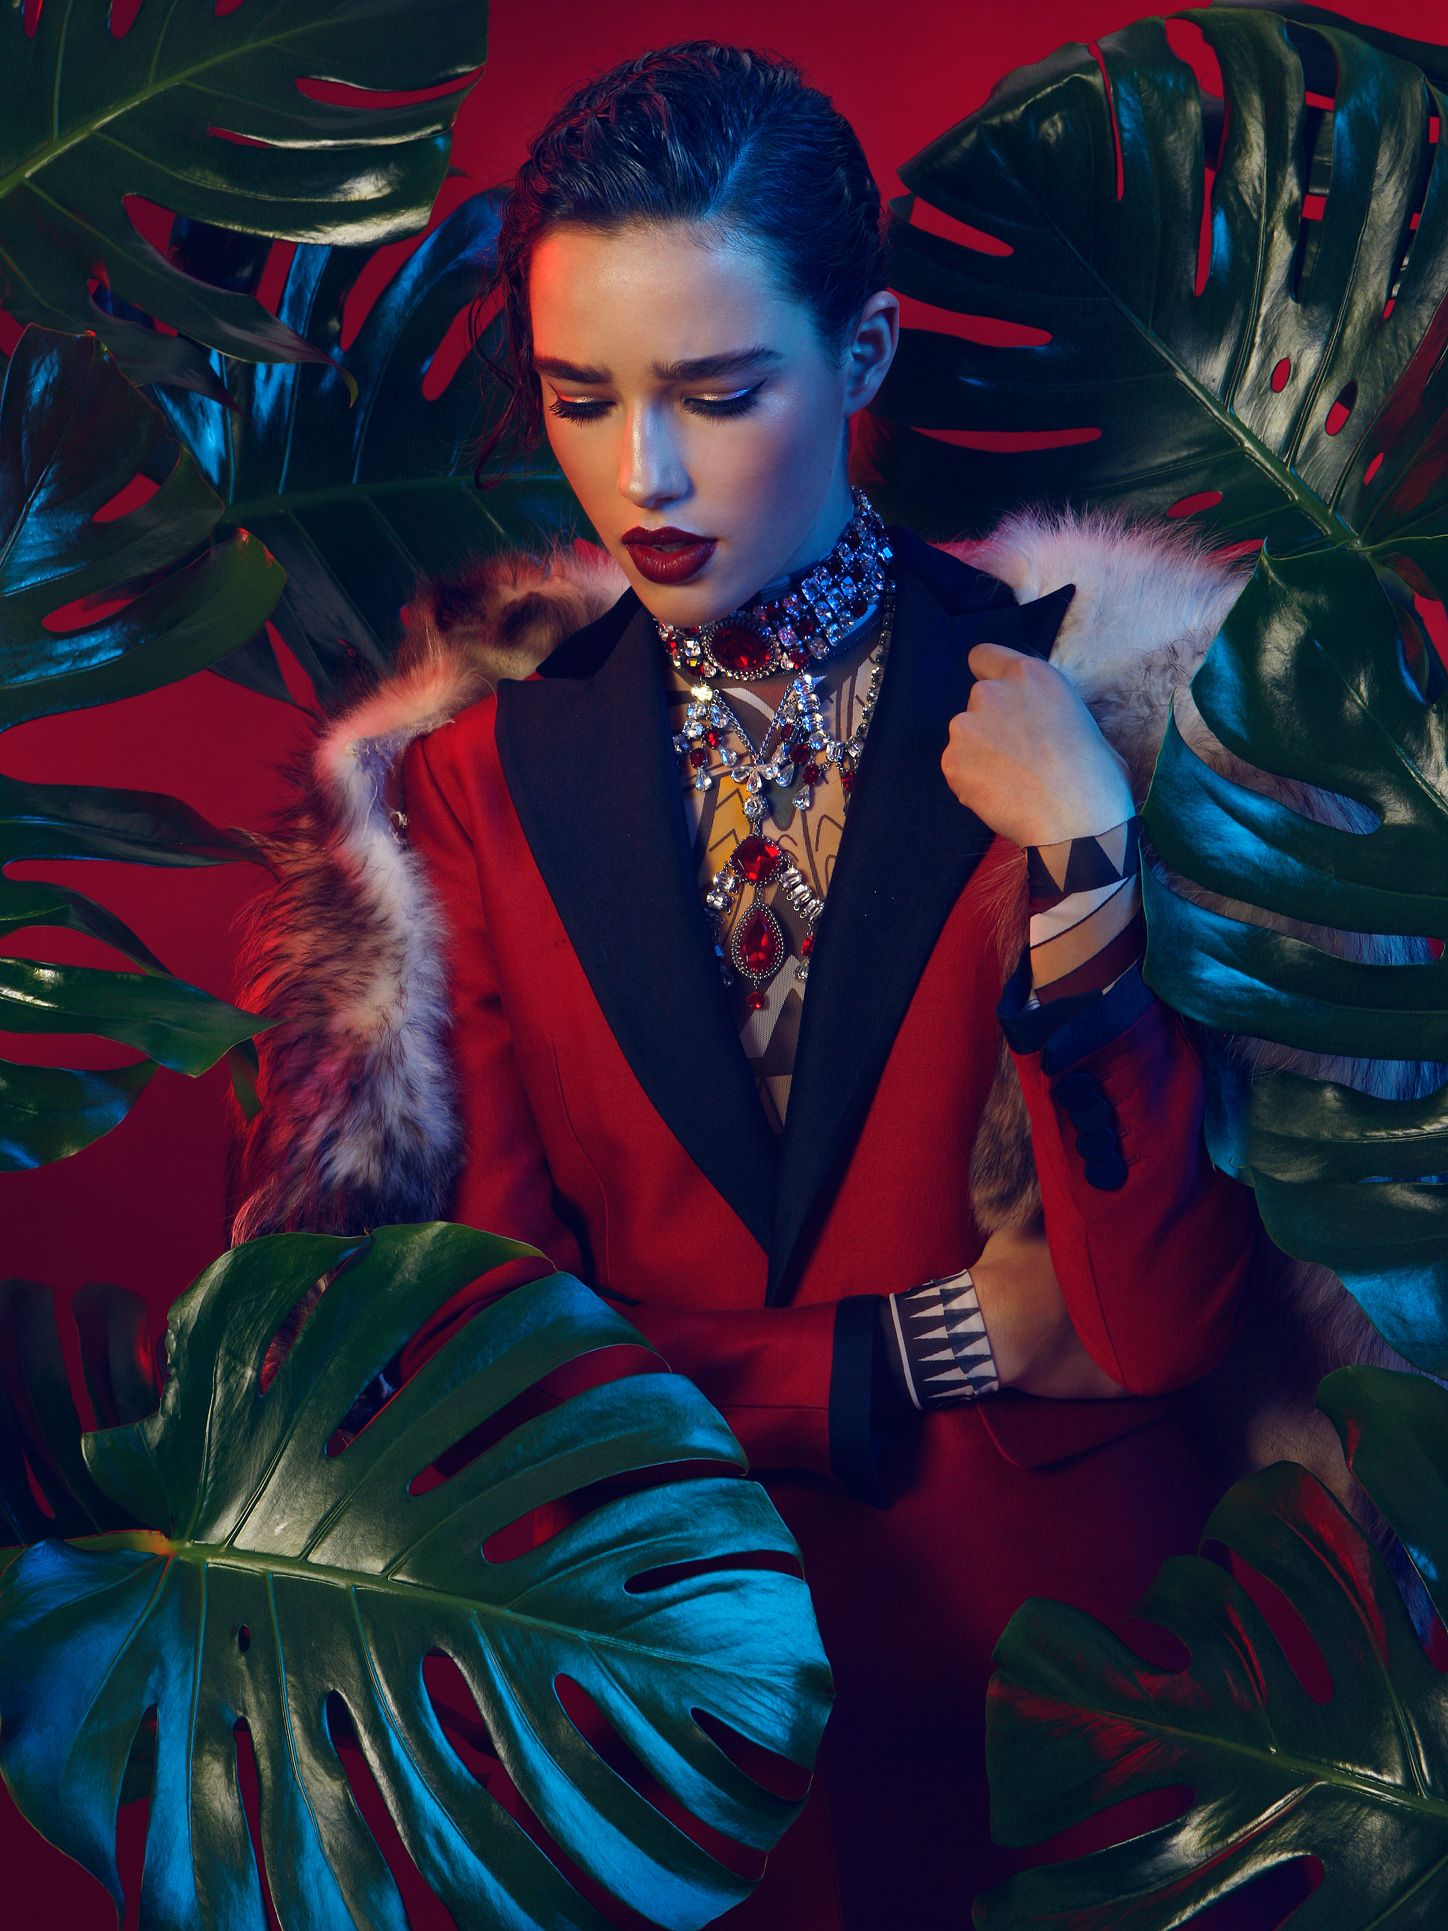 'Jungle Mania' ~ Robin van Halteren by Cosimo Buccolieri for Factice Magazine, February 2016